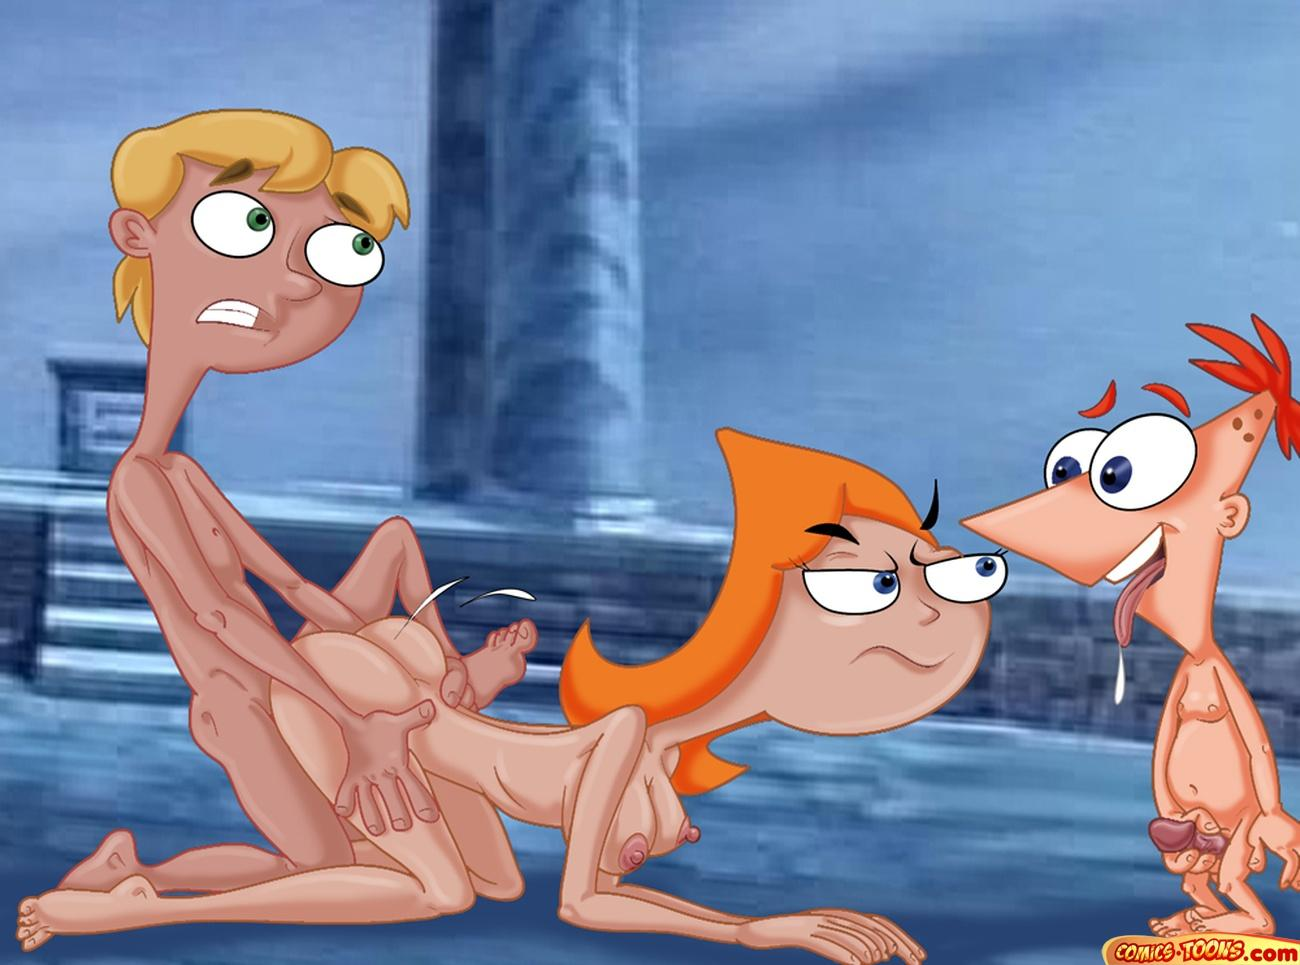 Phineas and ferb are banging candace